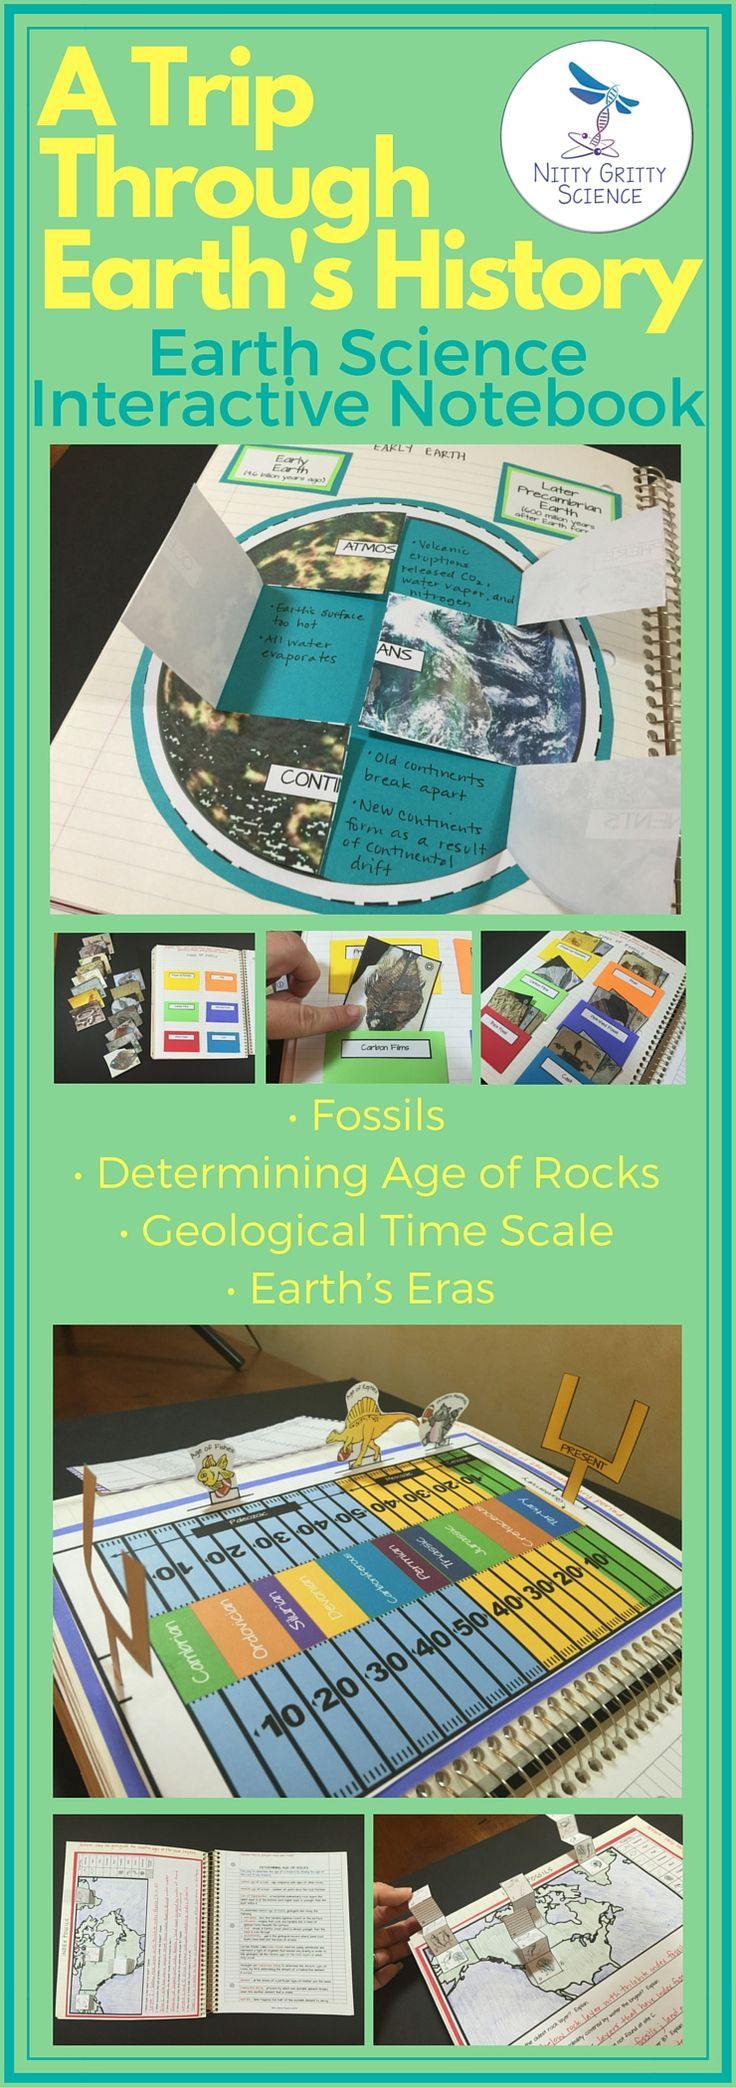 25 best ideas about earth science on pinterest earth science activities earth science. Black Bedroom Furniture Sets. Home Design Ideas